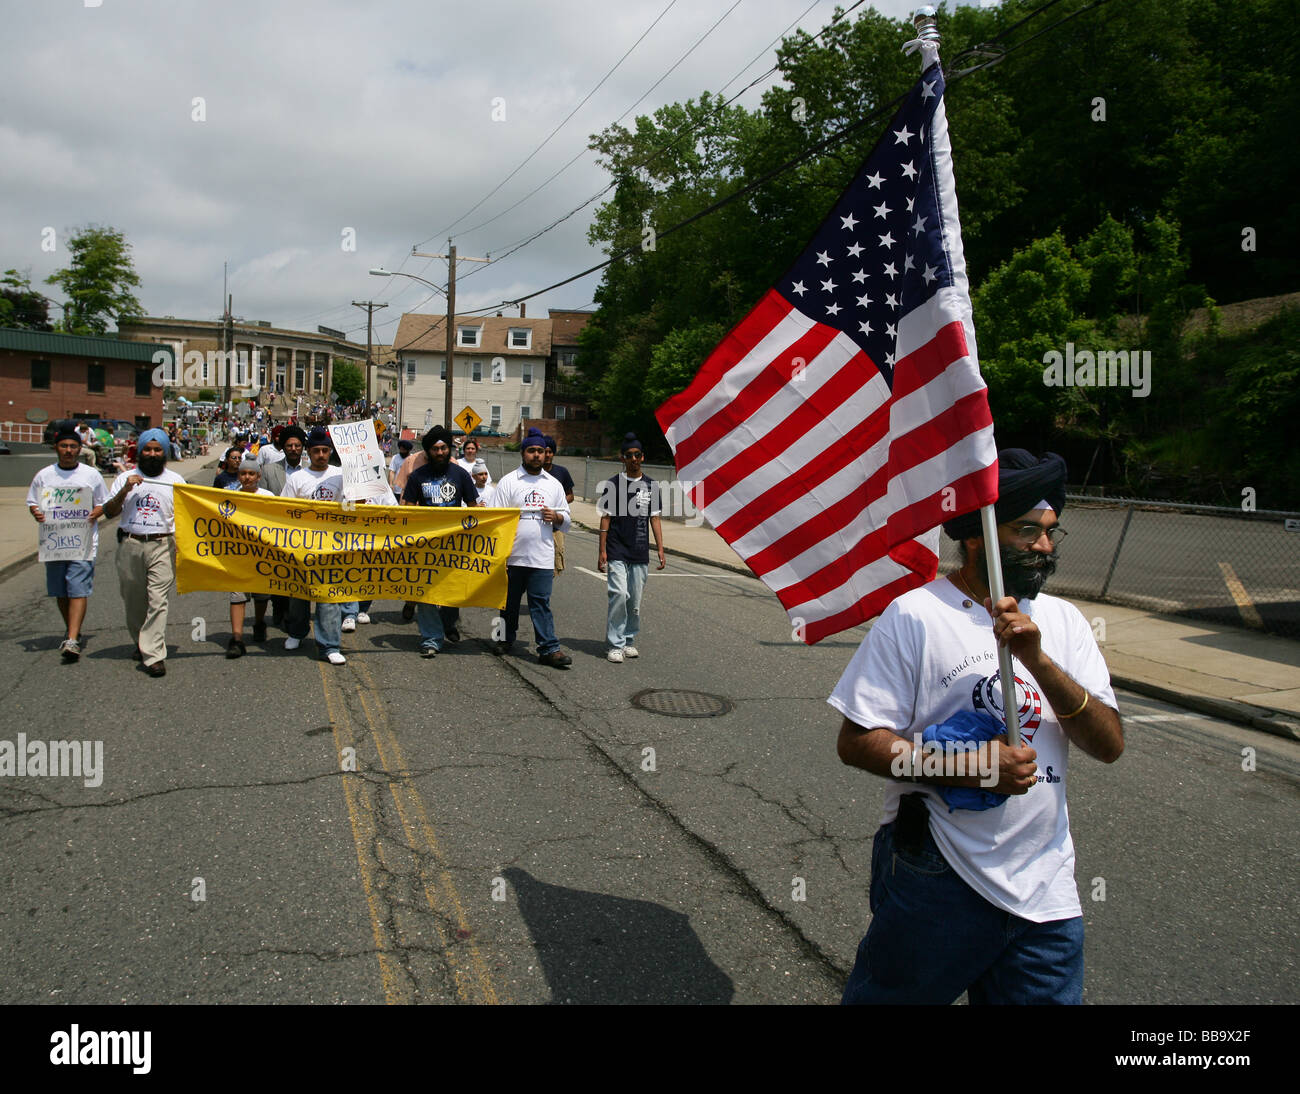 Sikhs march in a 4th of July parade in Shelton CT USA in honor of their veterans who fought in WWII for the USA - Stock Image